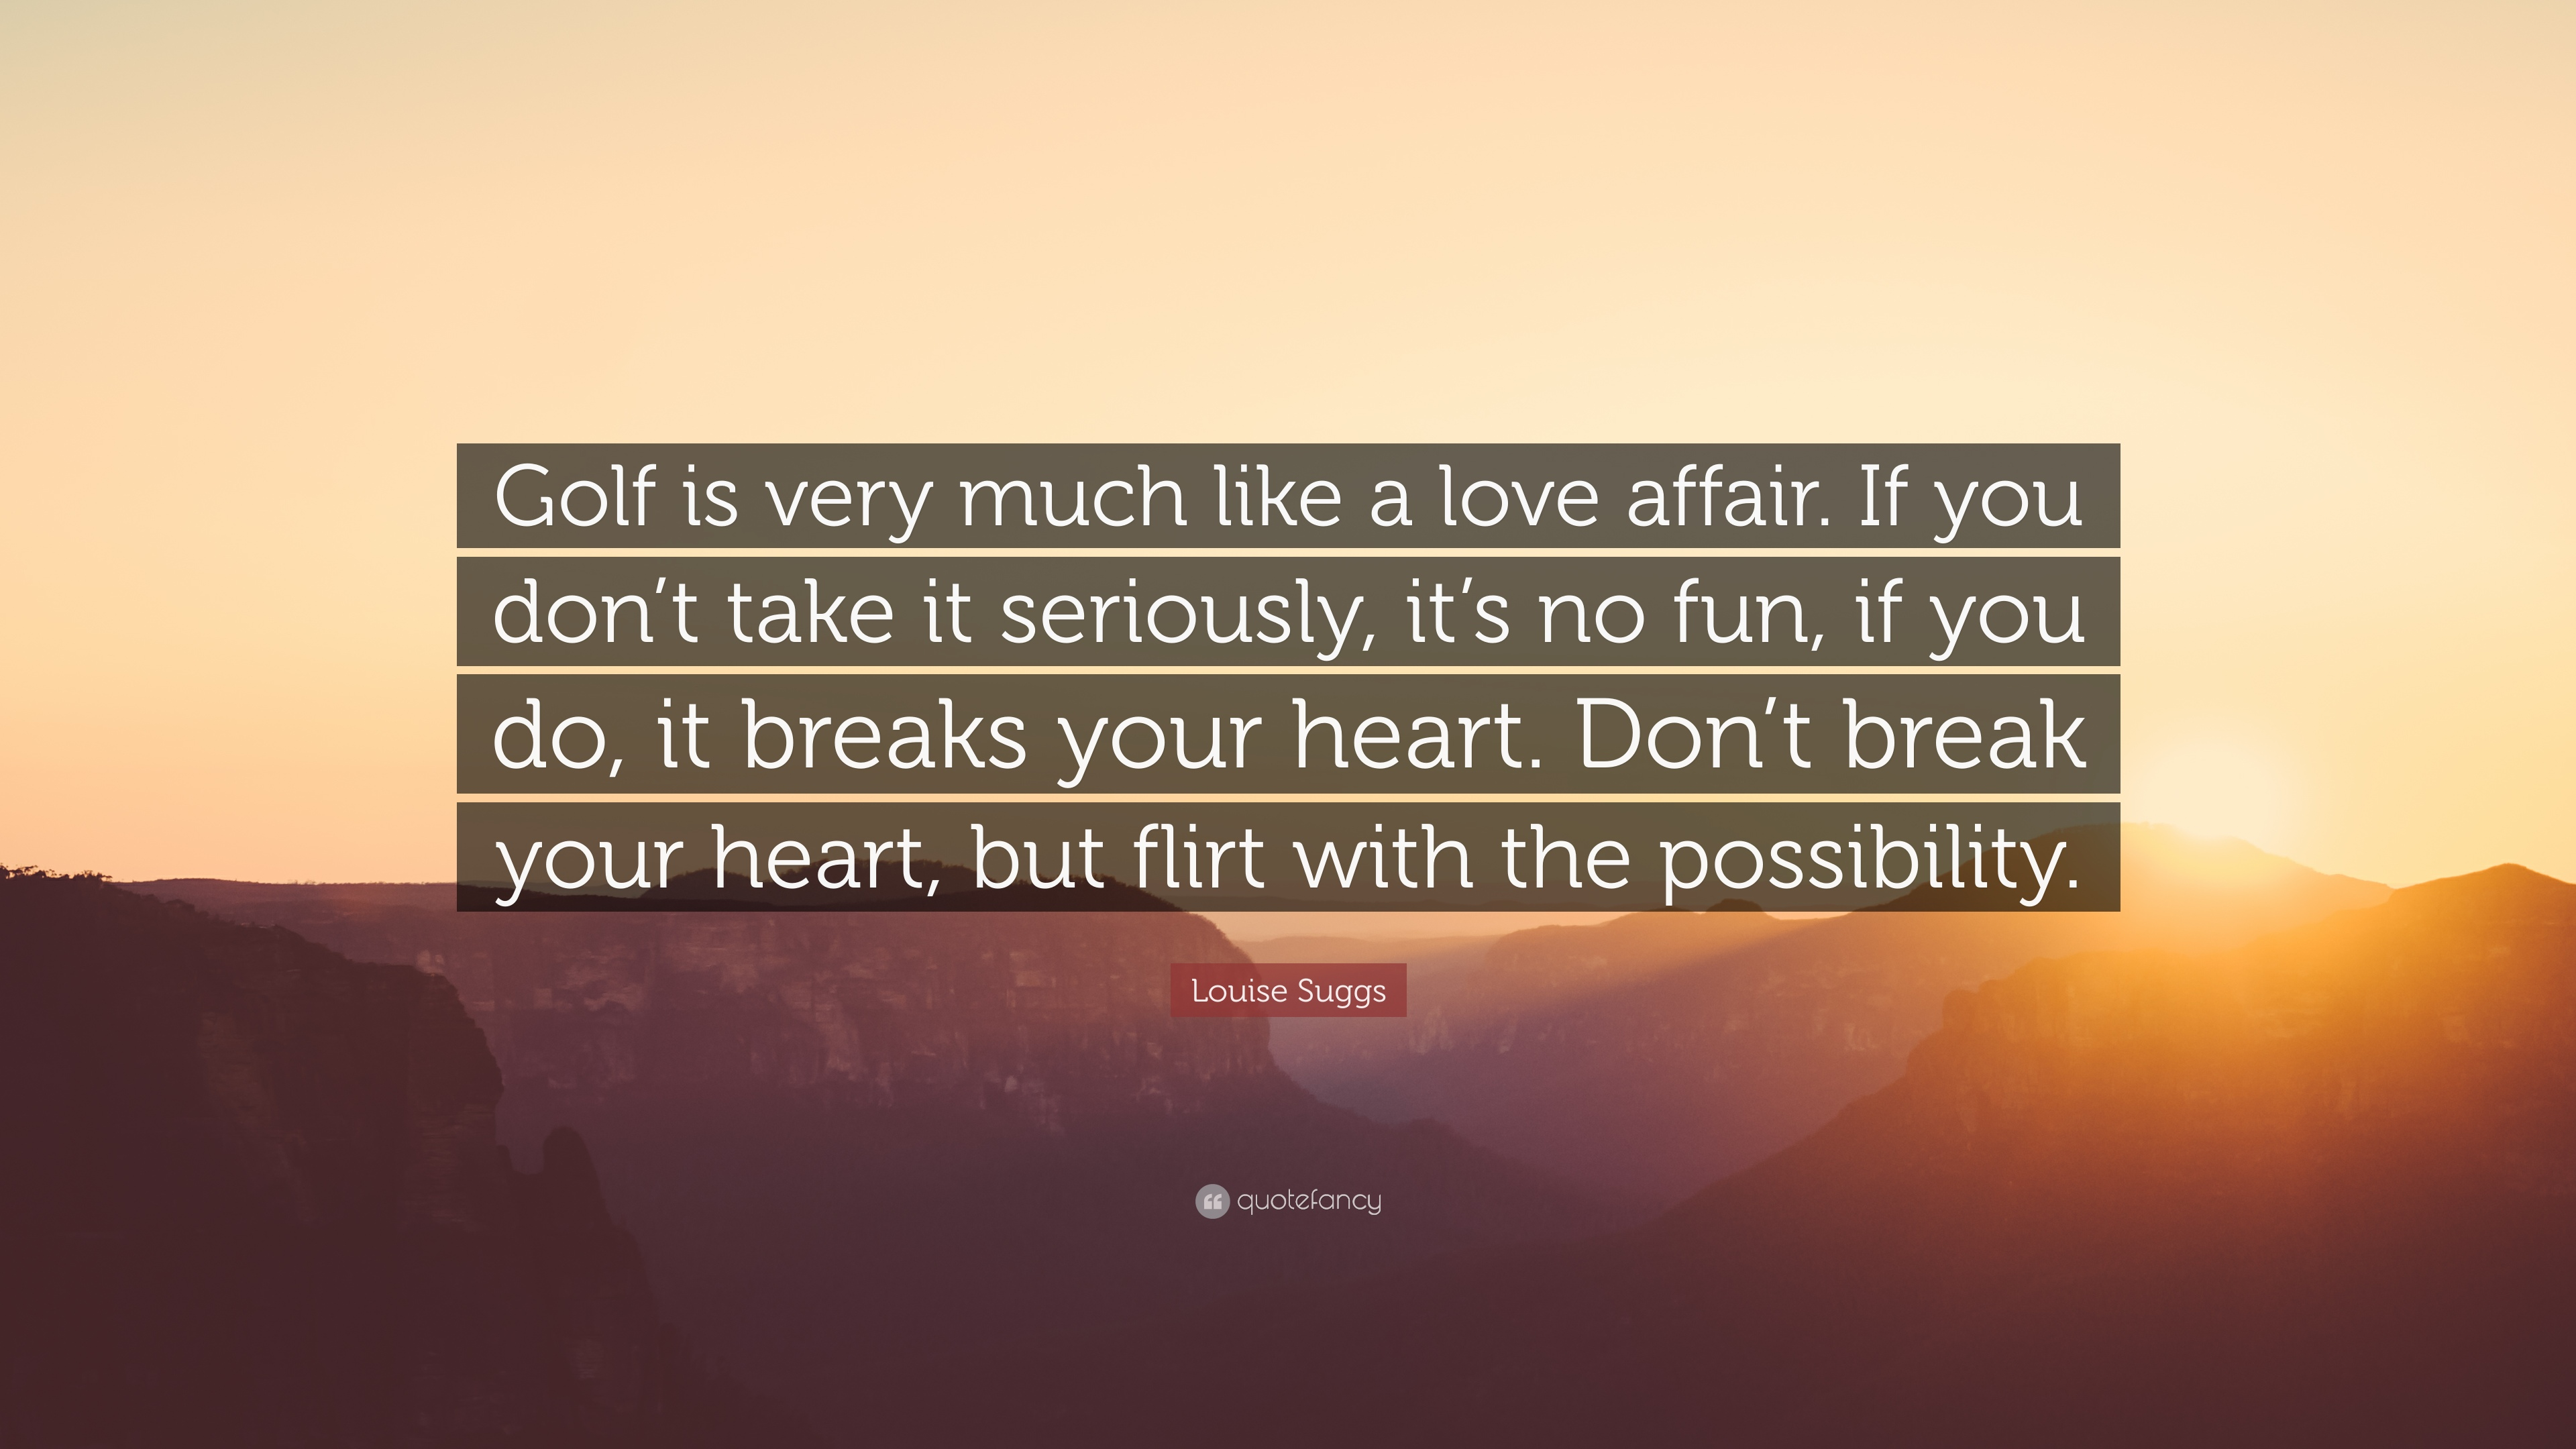 Golf Love Quotes Louise Suggs Quotes 2 Wallpapers  Quotefancy